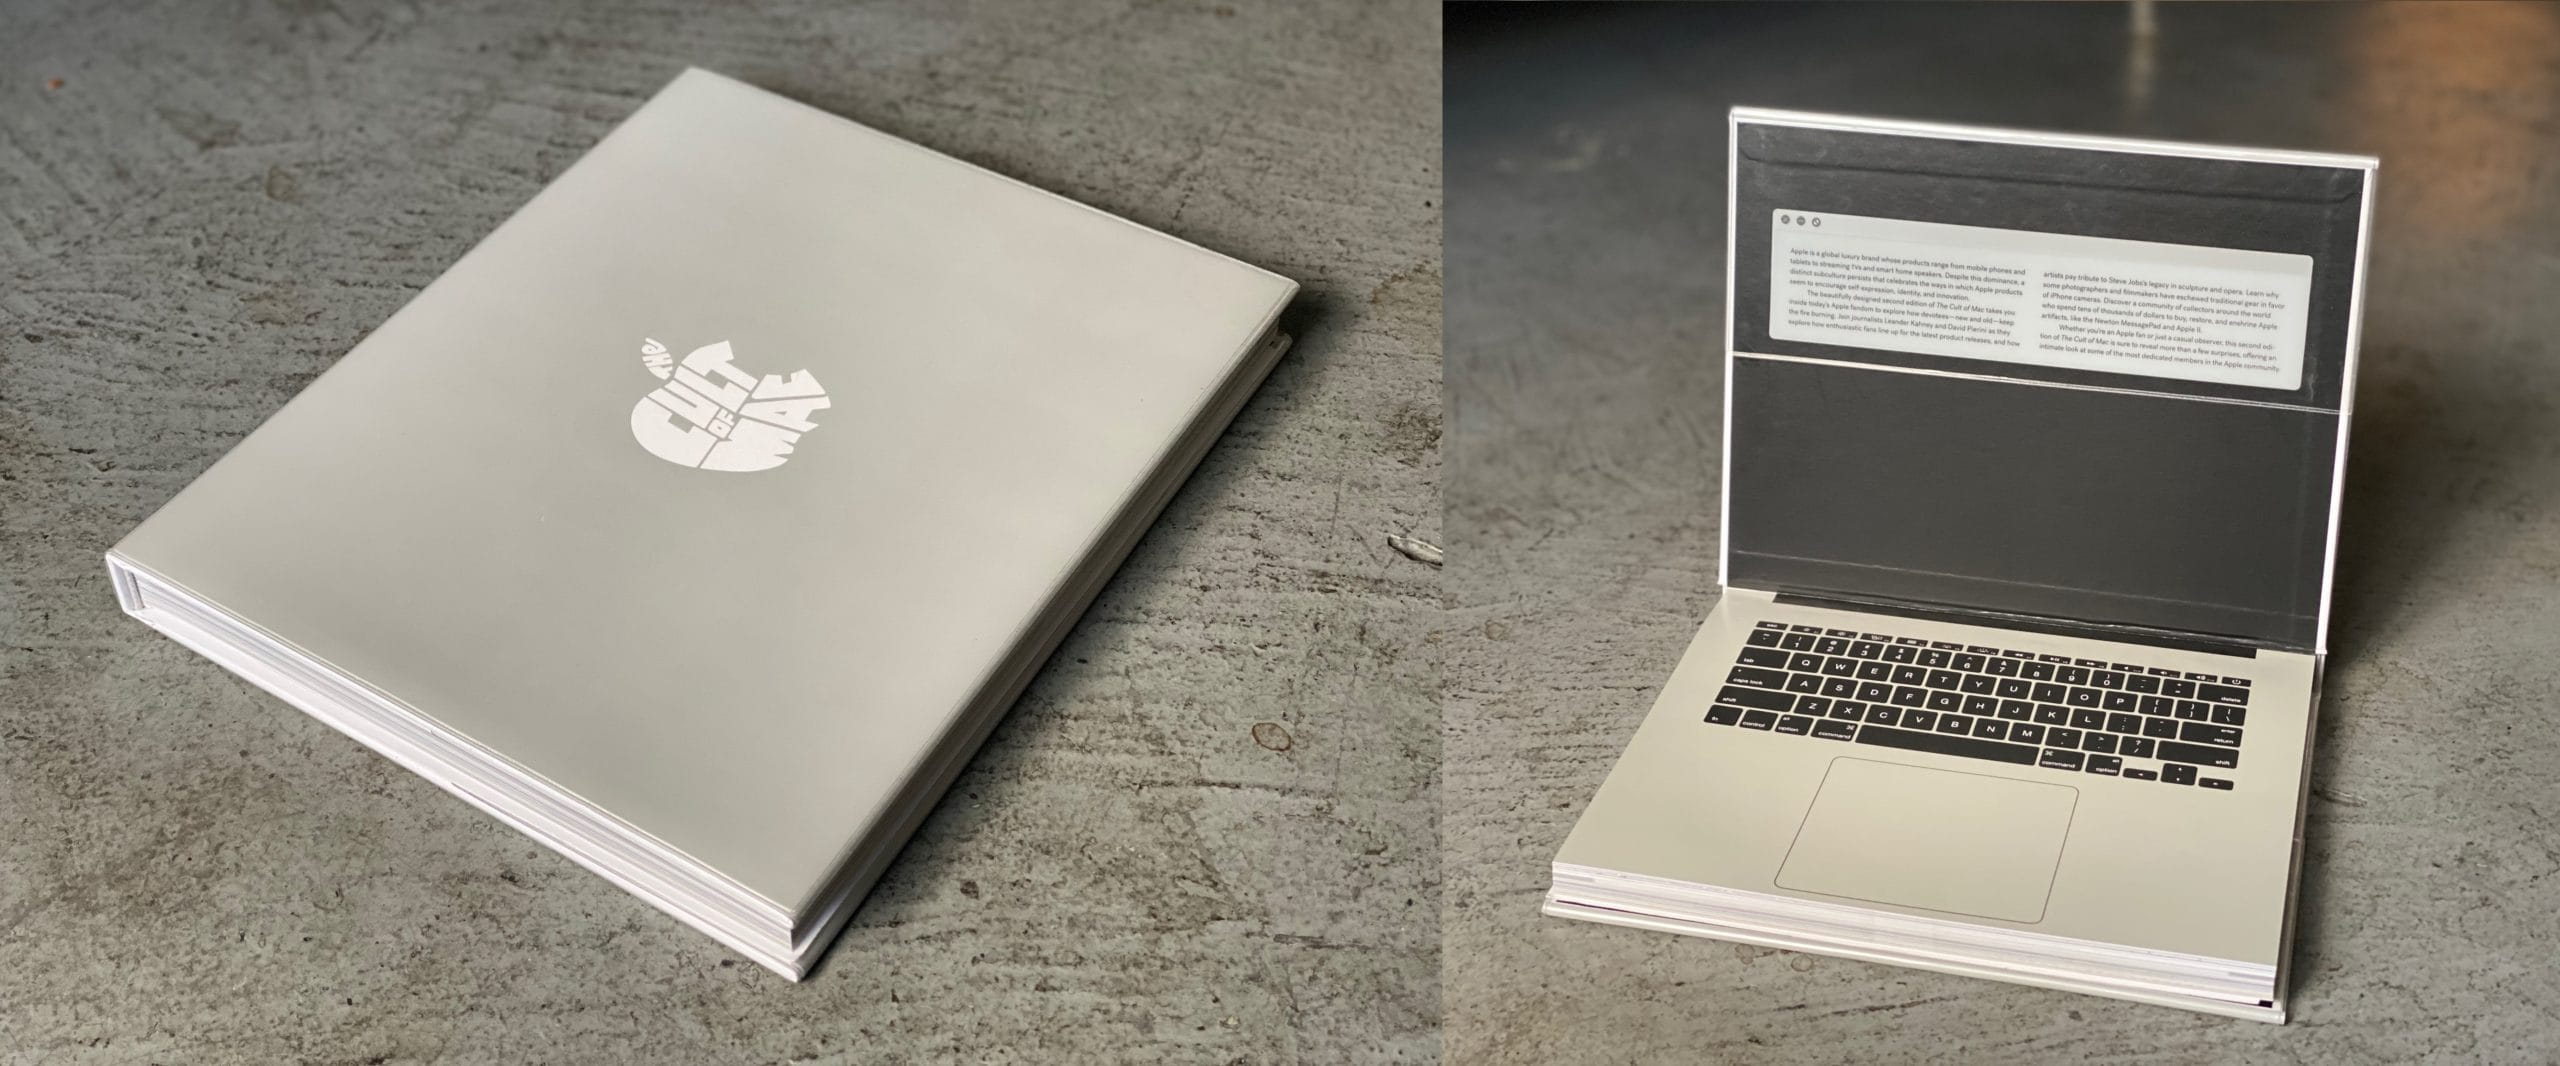 Innovative design: The Cult of Mac, 2nd Edition is the Mac book that looks like a MacBook.